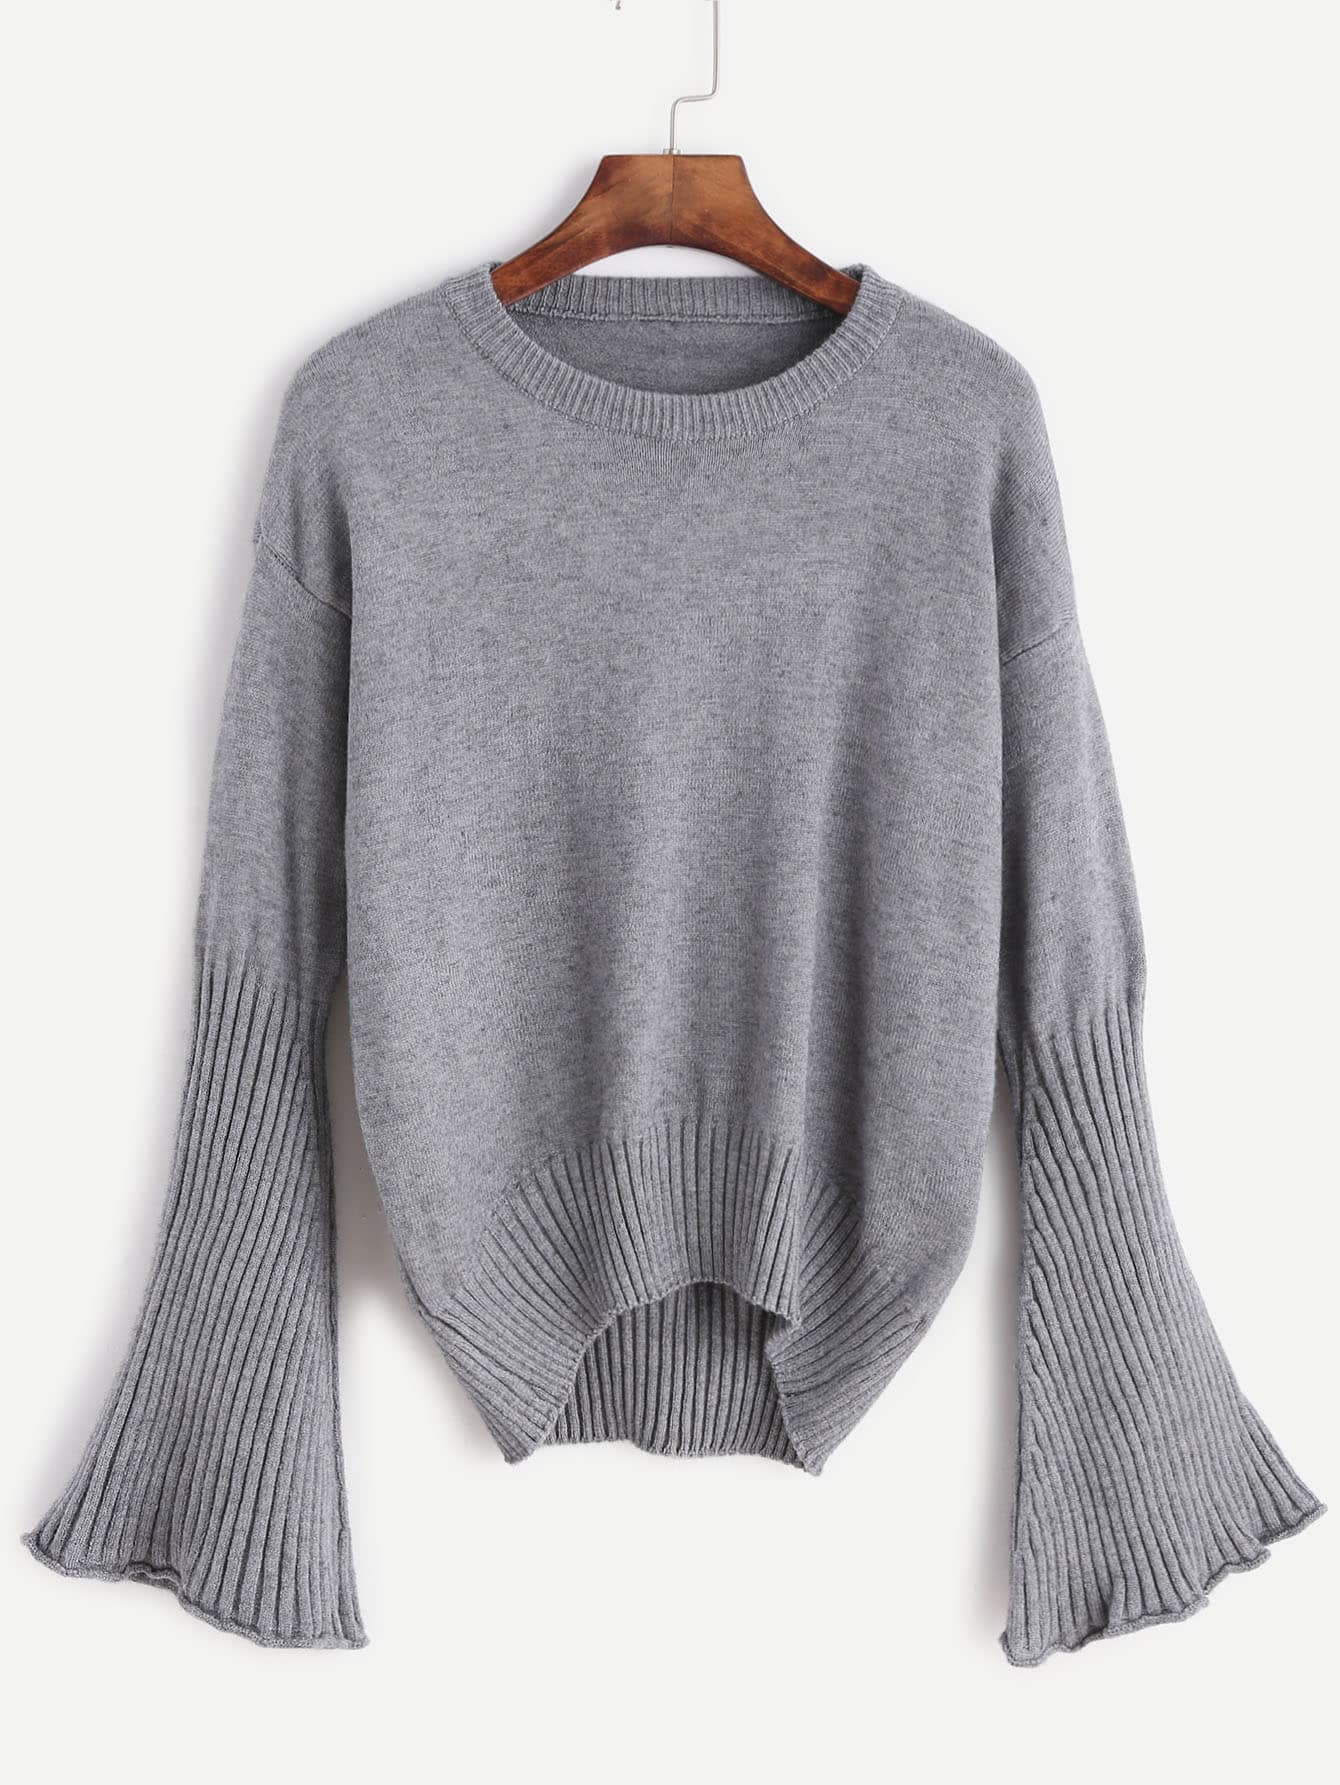 Grey Drop Shoulder Bell Sleeve Dip Hem SweaterGrey Drop Shoulder Bell Sleeve Dip Hem Sweater<br><br>color: Grey<br>size: one-size